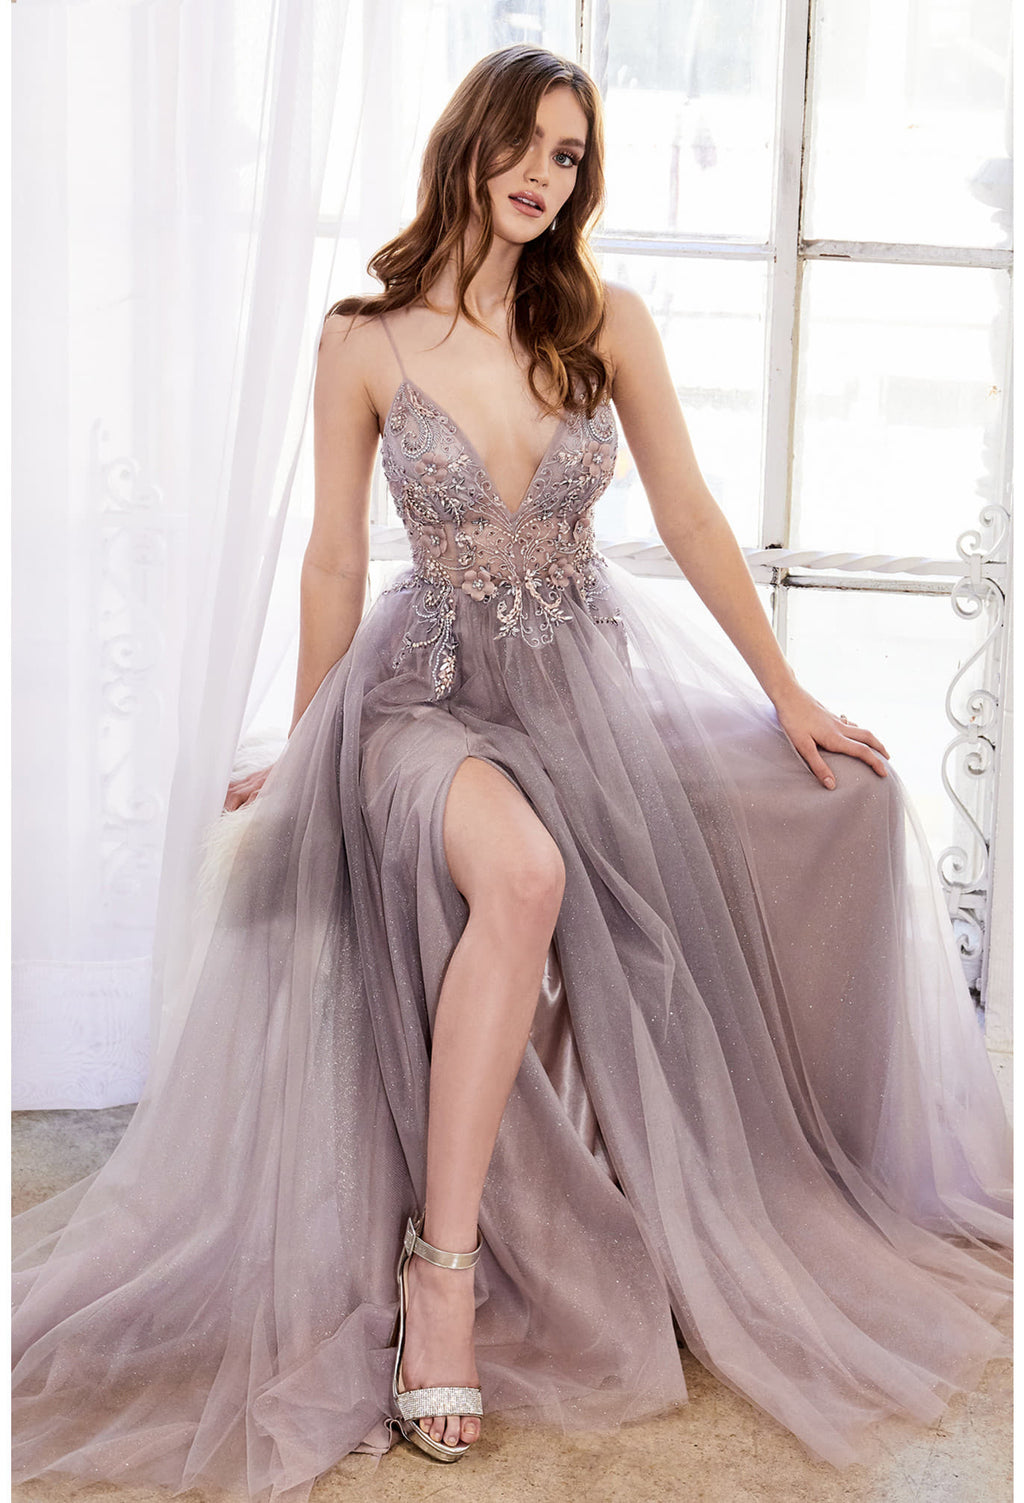 DAPHNE DREAMER 3D FLORAL AND BEADED V-NECK OMBRE TULLE A-LINE GOWN. BACK ZIPPER CLOSURE, SOME STRETCH.